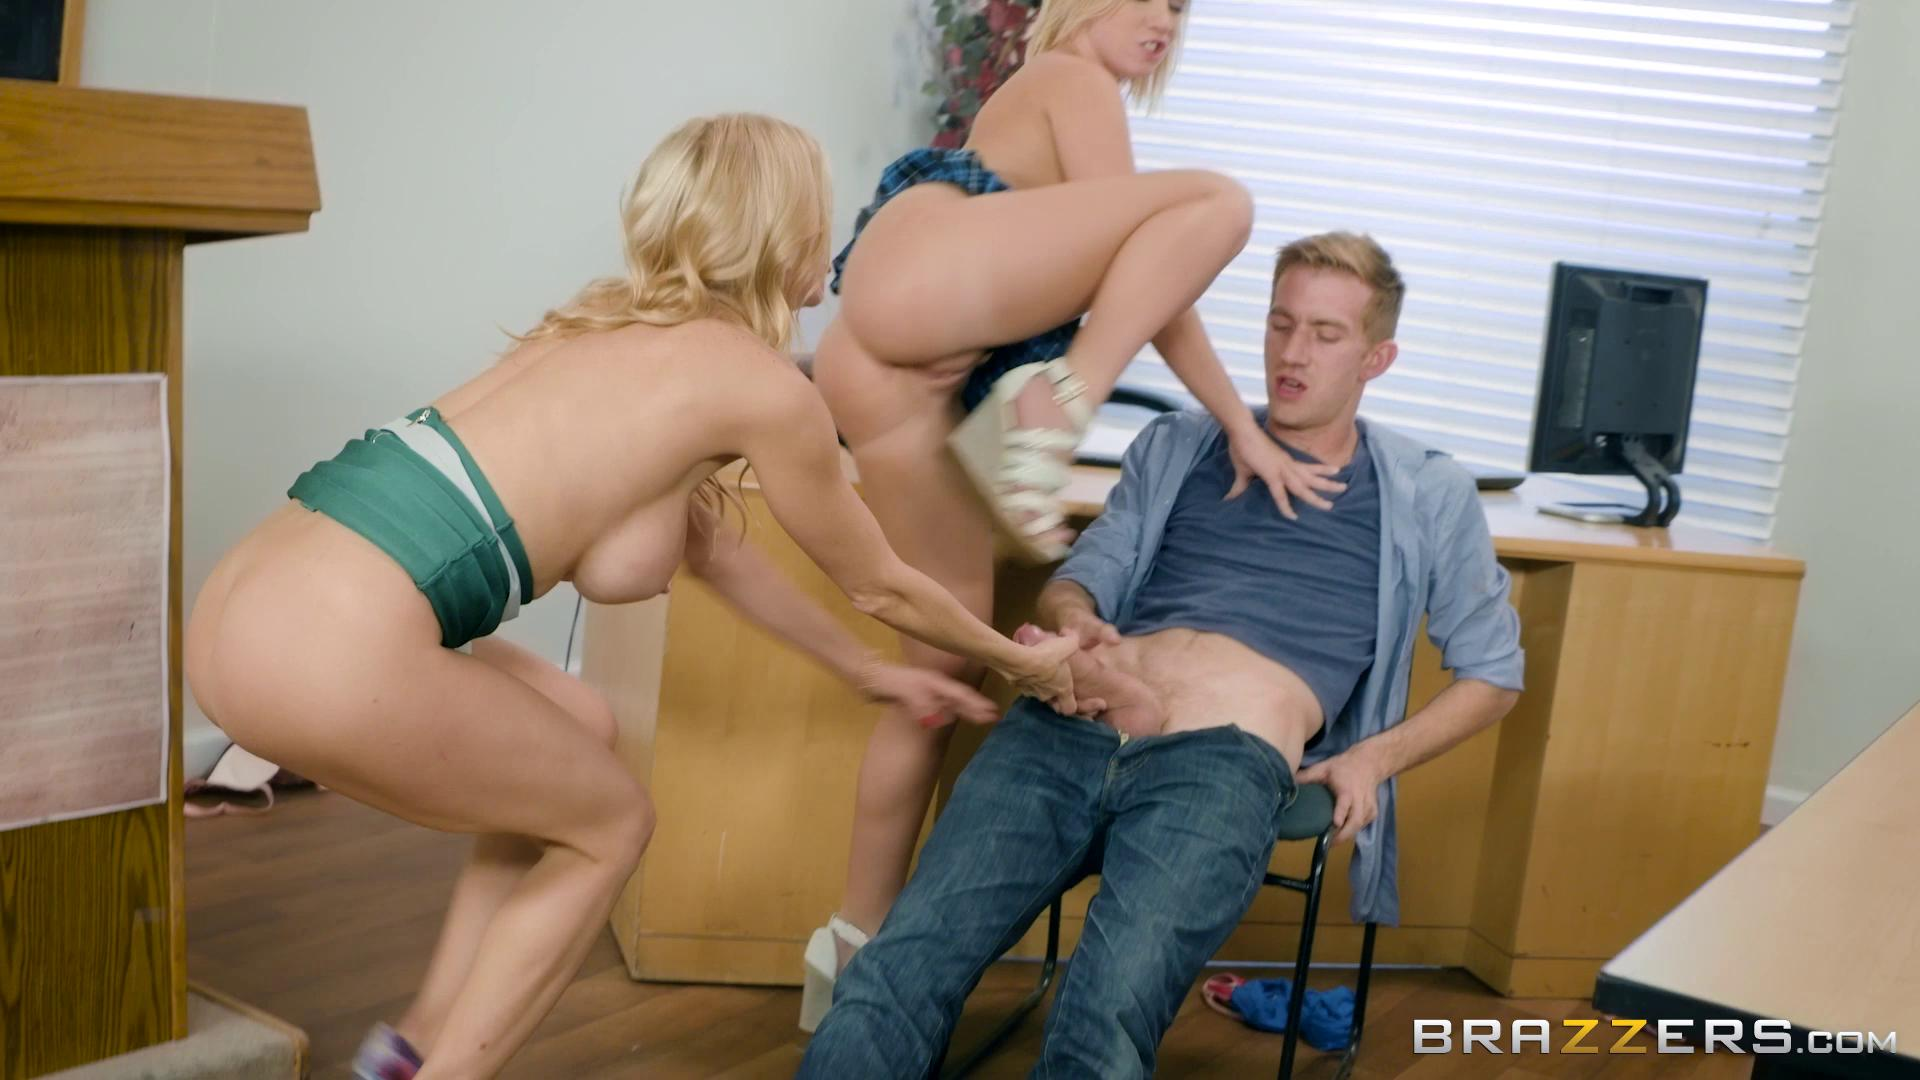 BigTitsAtSchool – Alexis Fawx And Bailey Brooke College Dreams